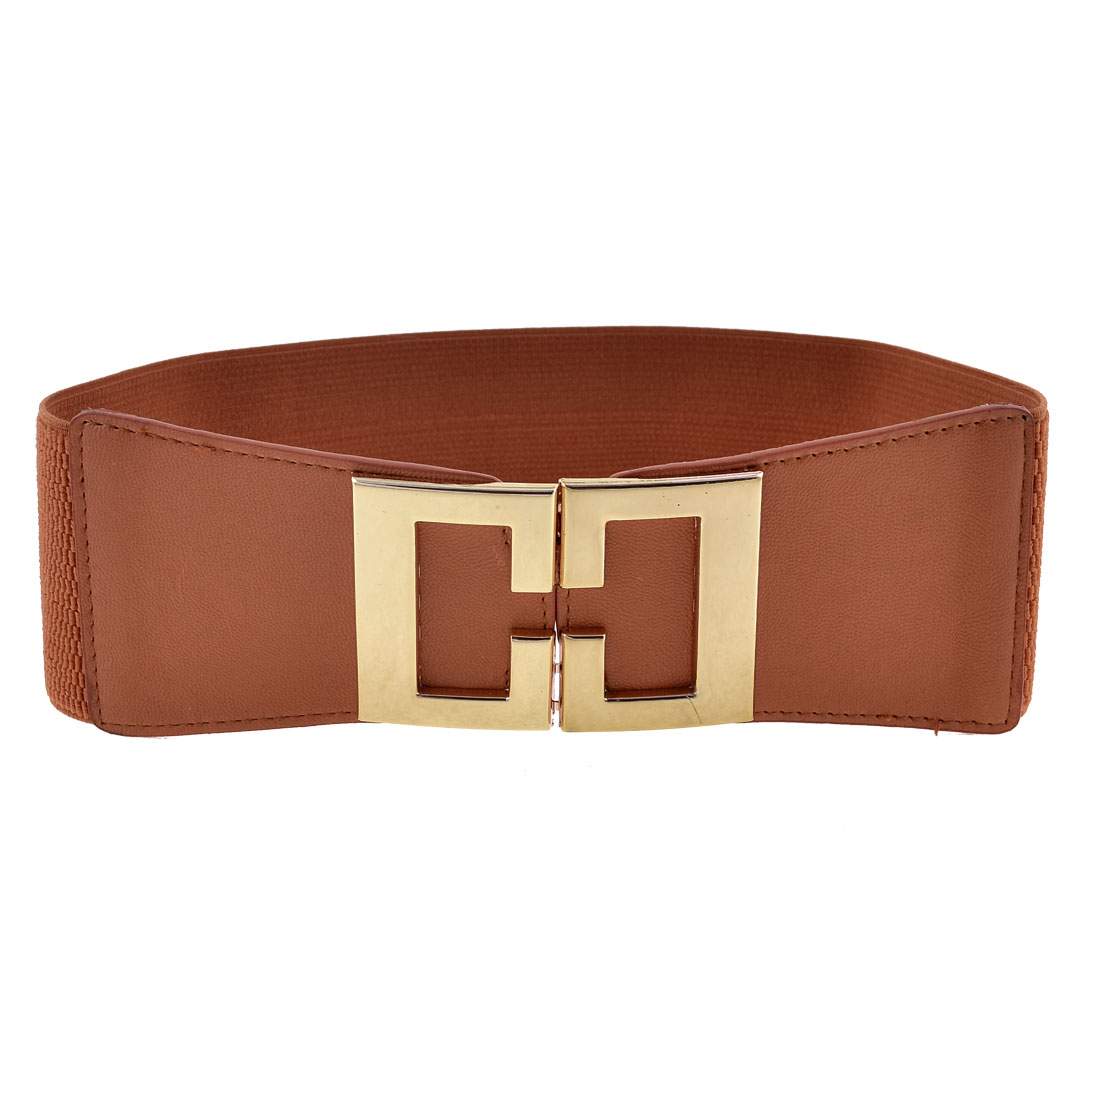 Lady Mirror Polish Interlock Buckle Faux Leather Stretchy Waistbelt Belt Brown